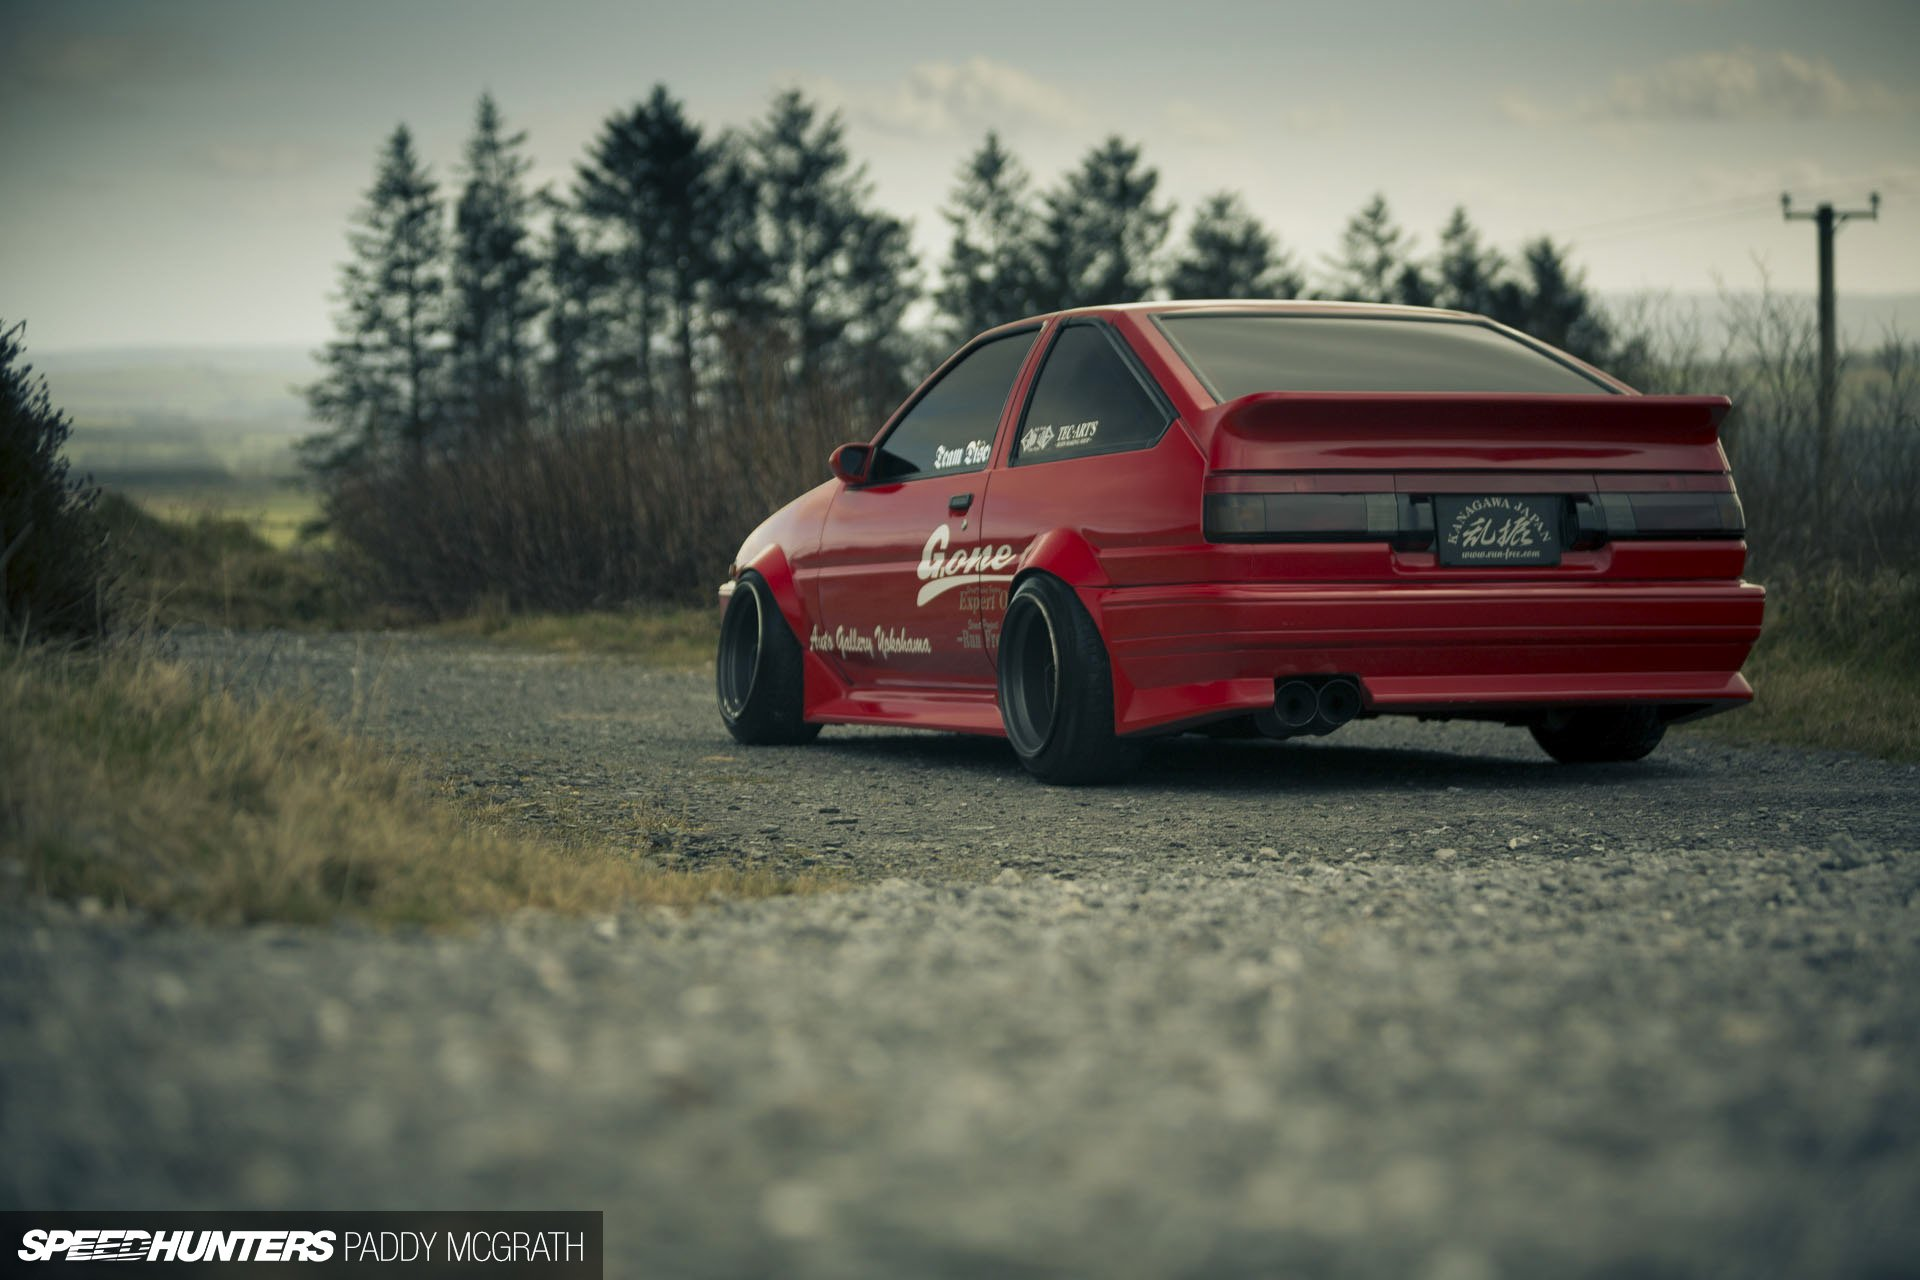 ae86 wallpaper the hippest galleries